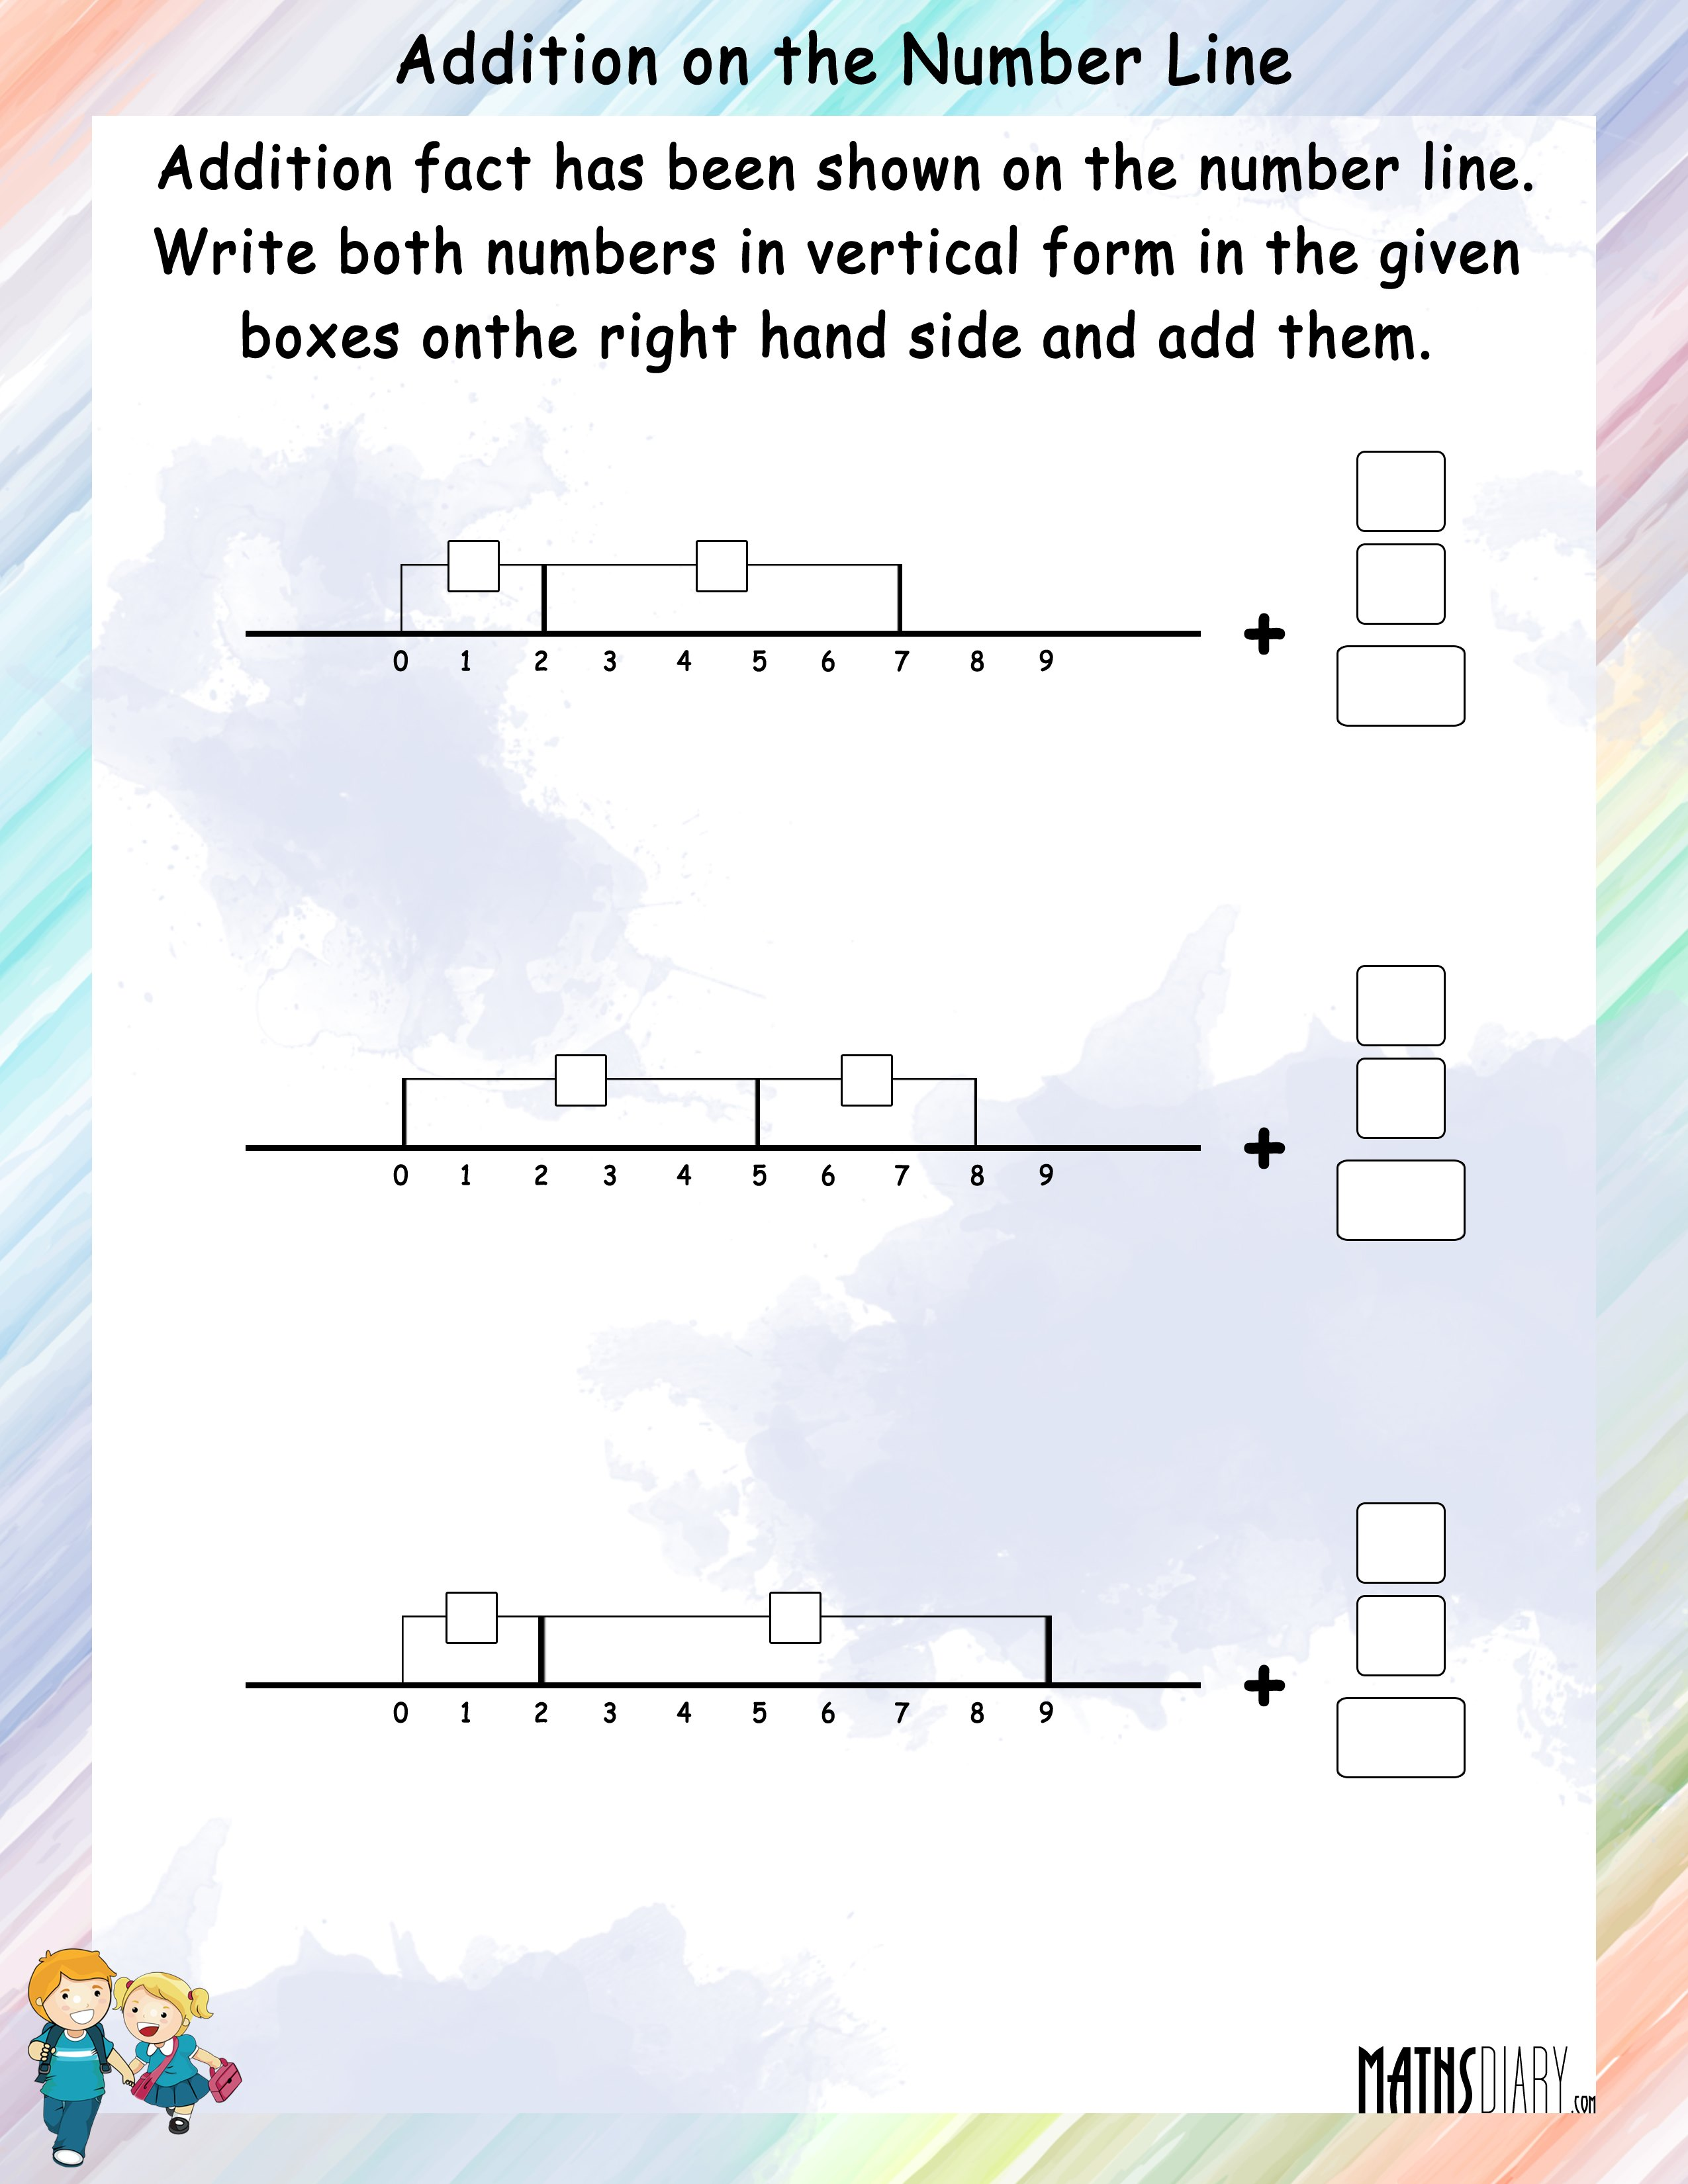 Addition on a Number Line MathsDiary